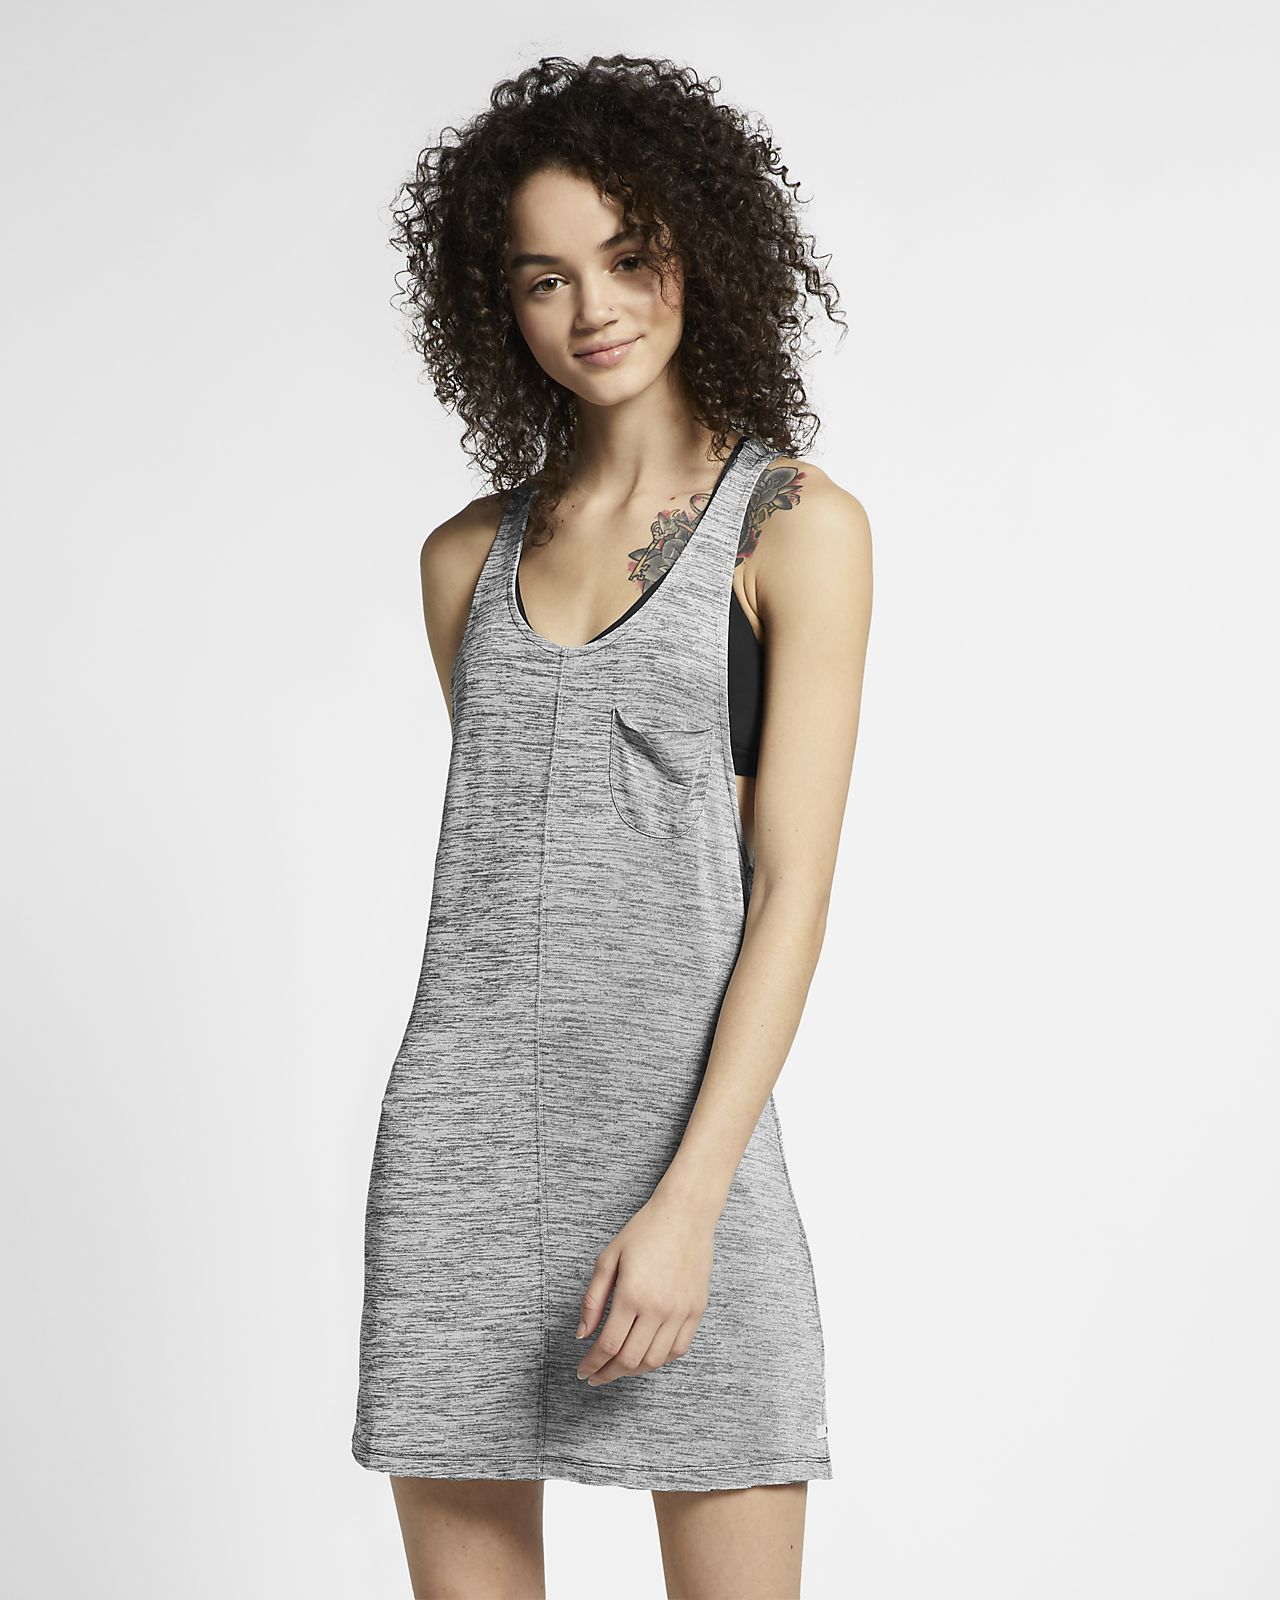 Hurley Glow Women's Knit Dress